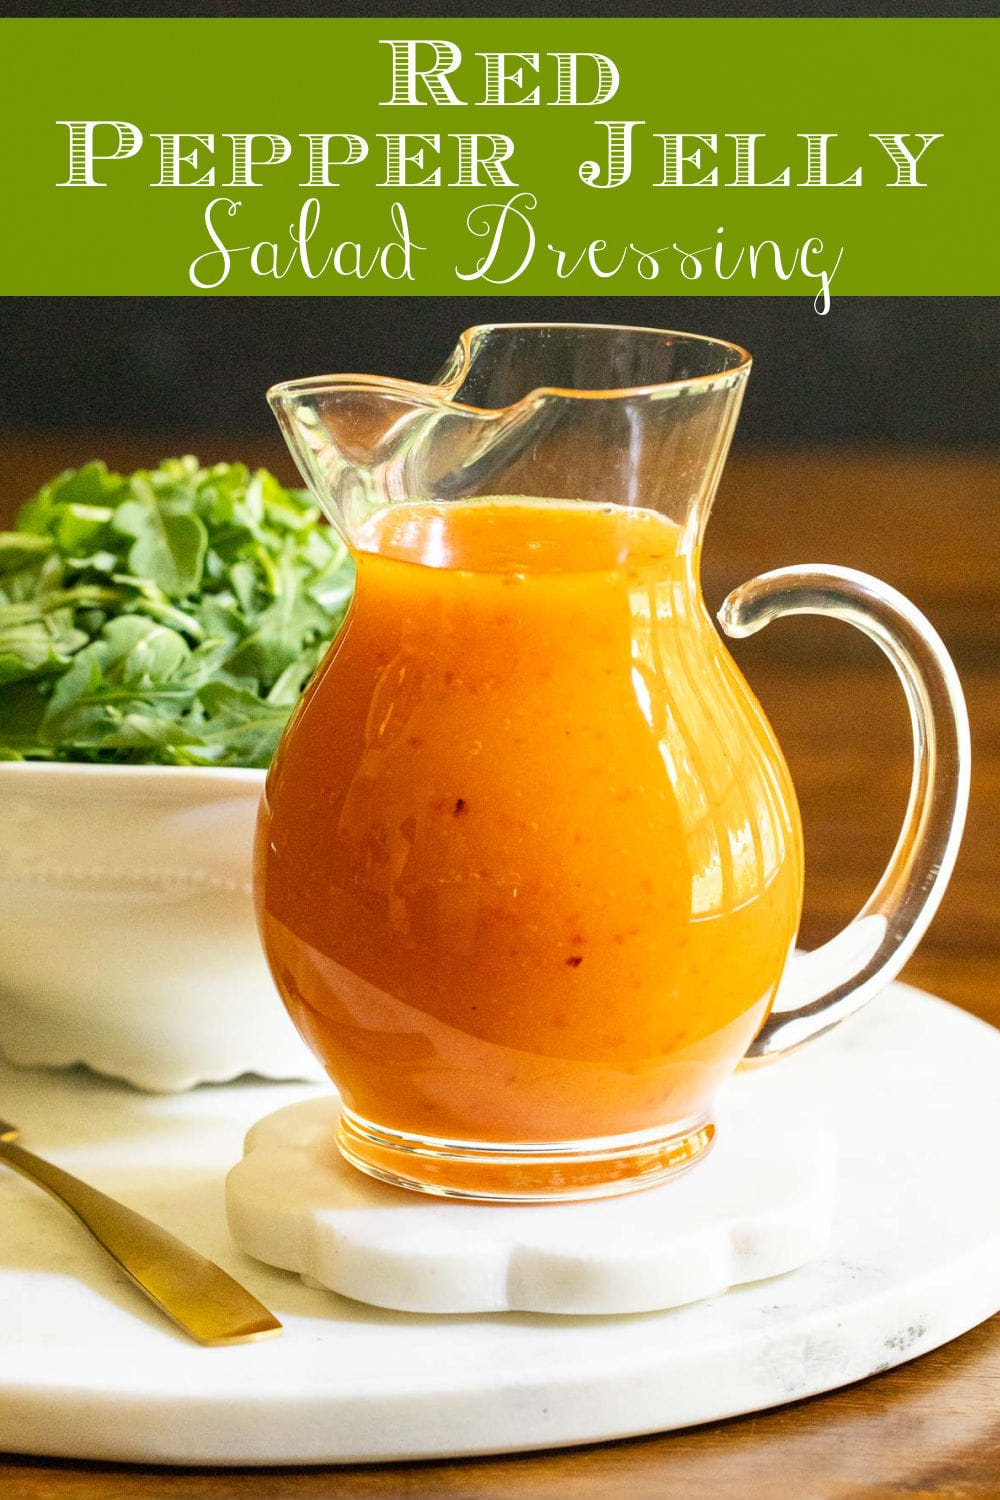 Red Pepper Jelly Salad Dressing